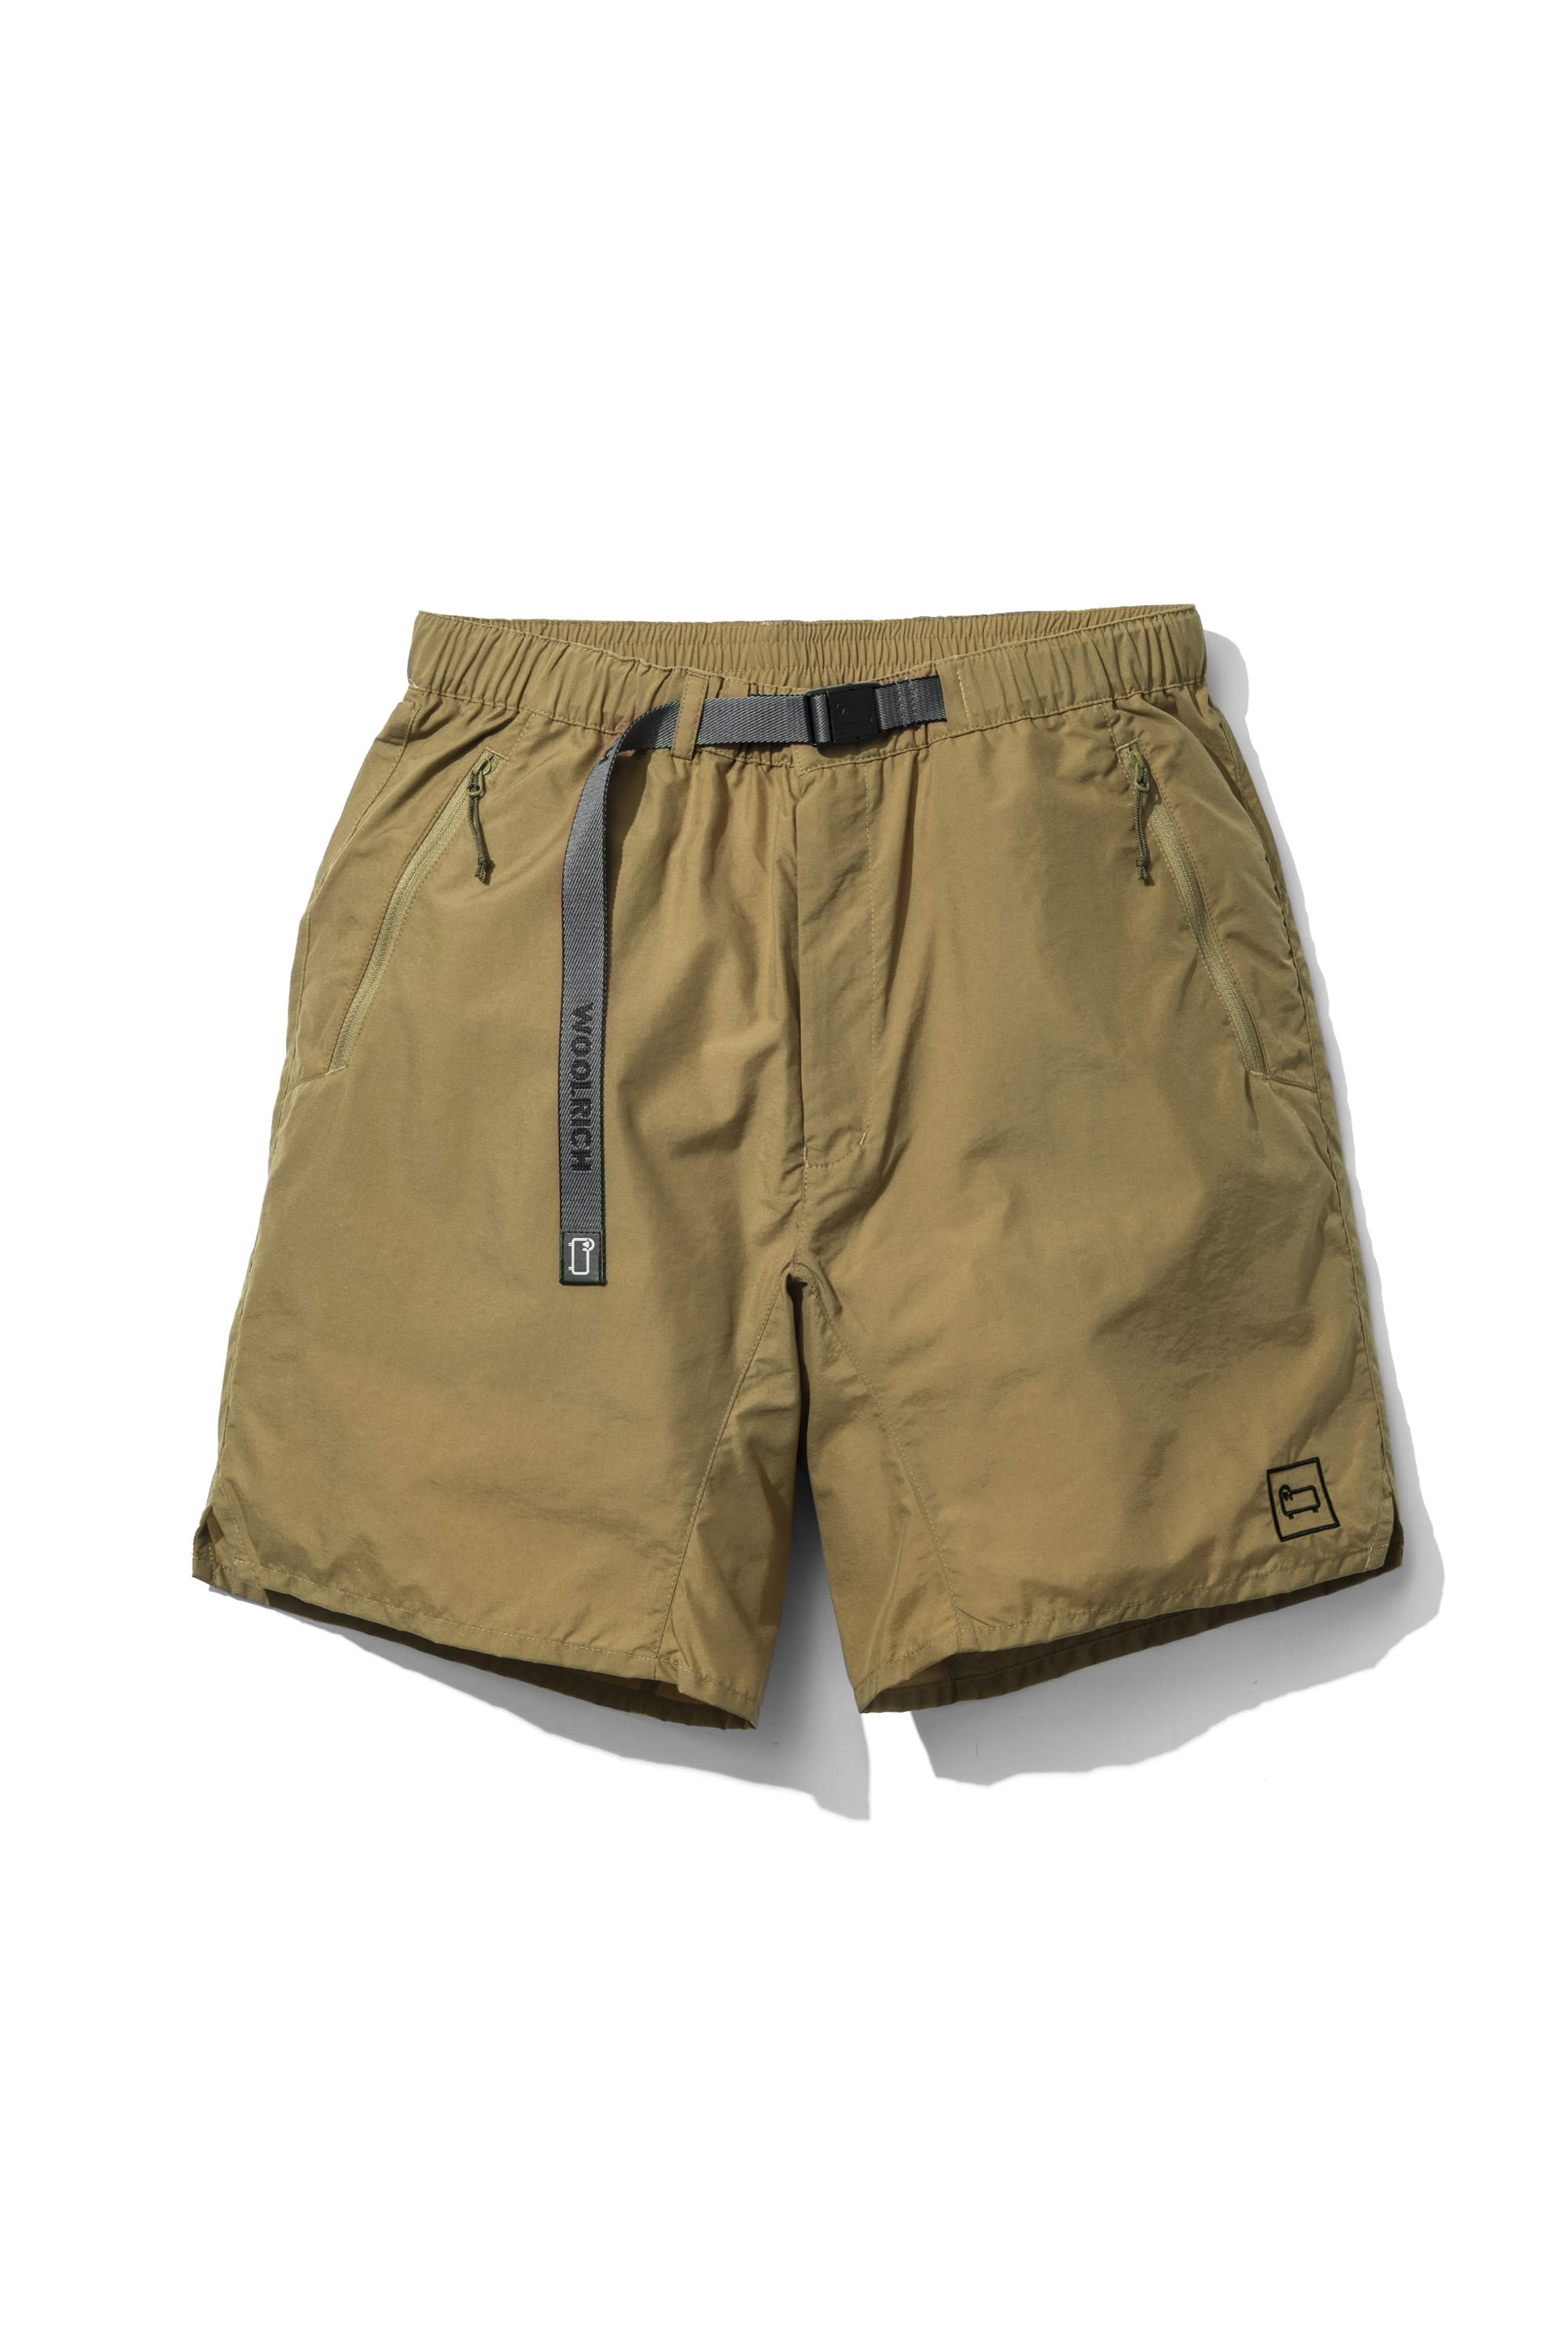 RANCH SHORTS 2.0